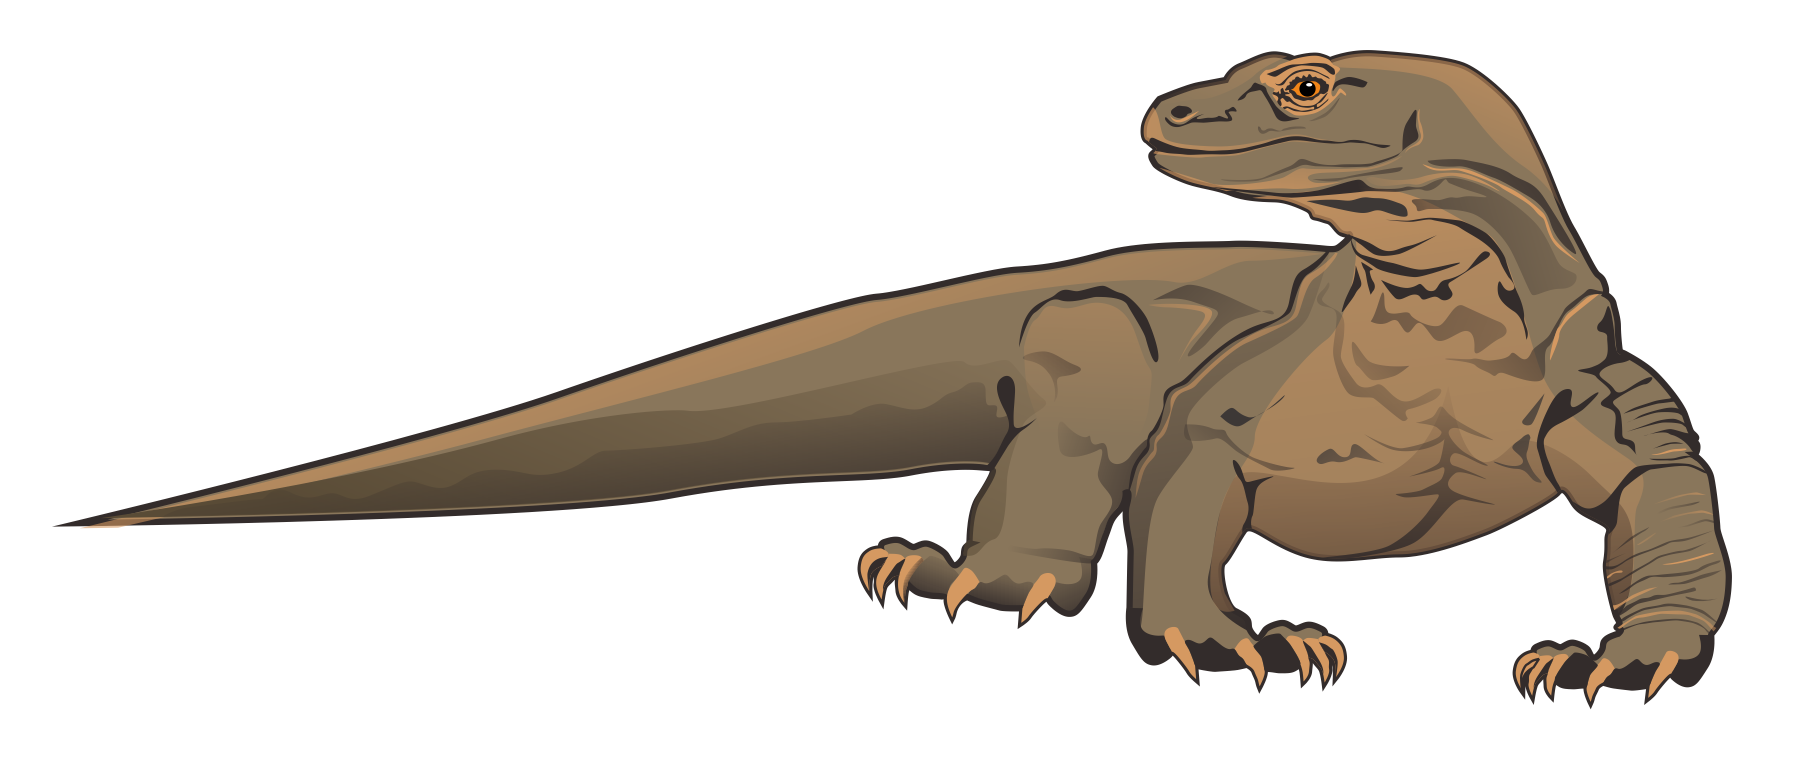 Komodo Dragon clipart #14, Download drawings